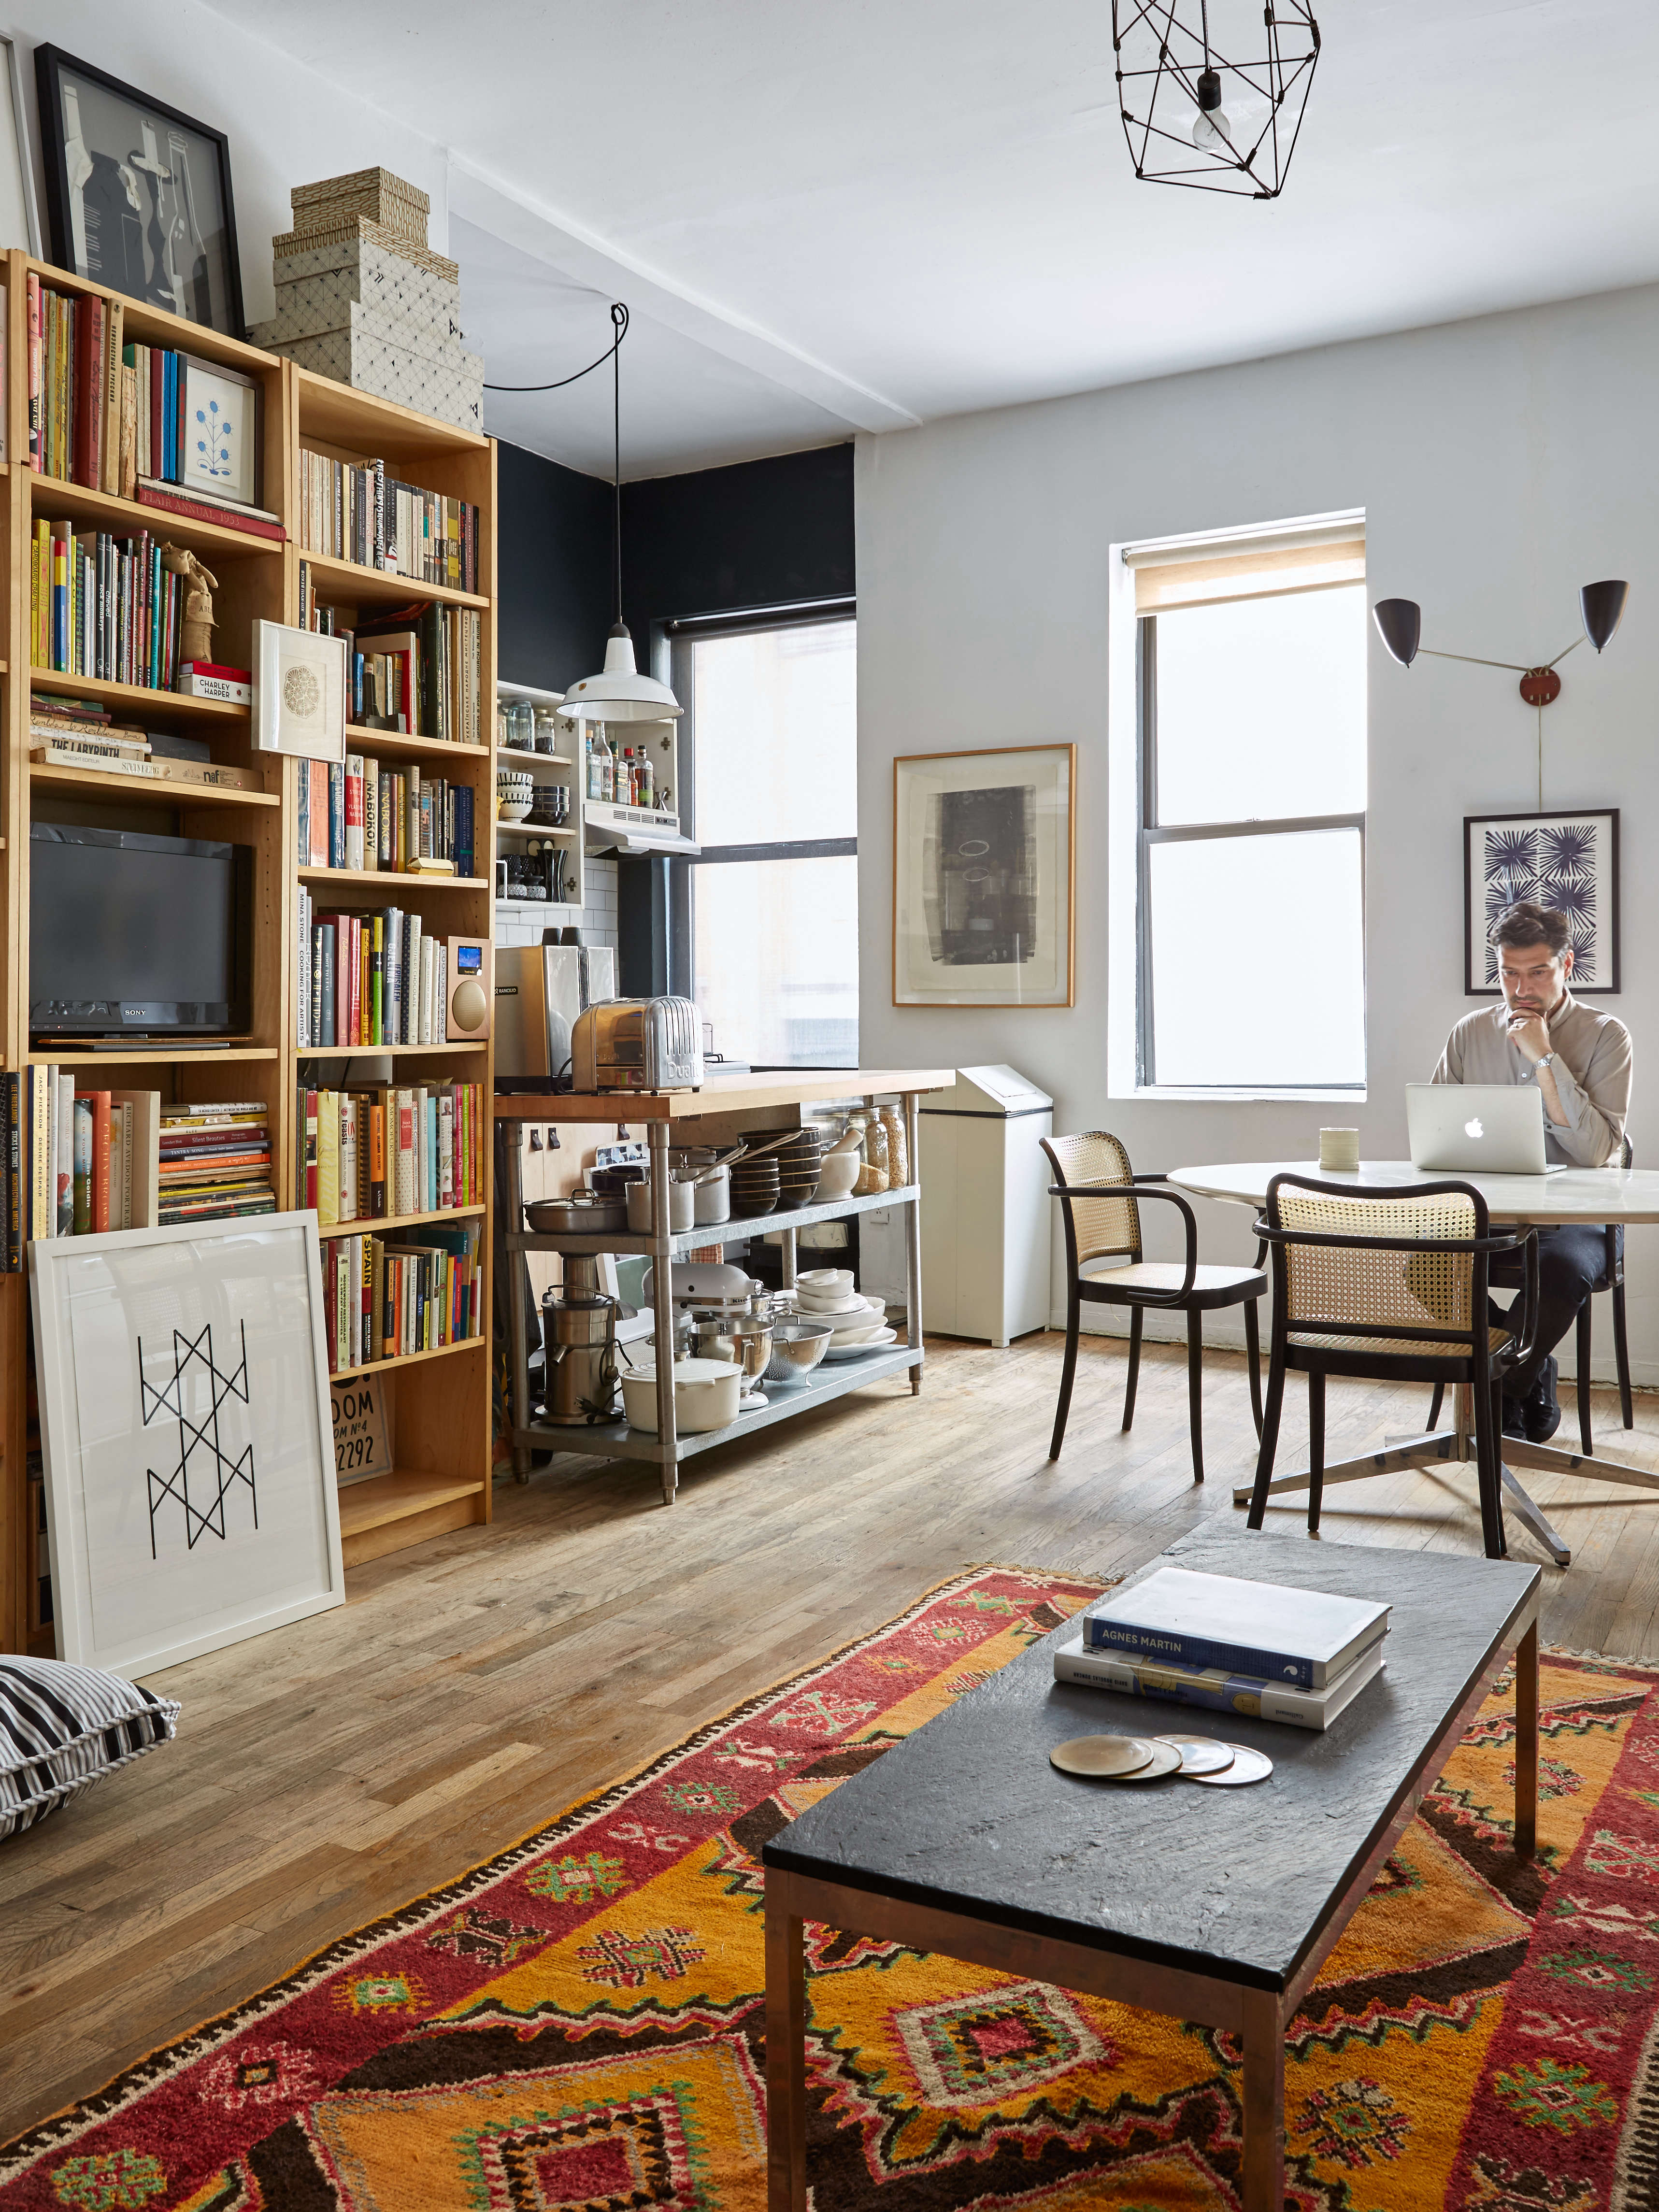 Small-Space Solutions: 17 Affordable Tips from a NYC Creative ...